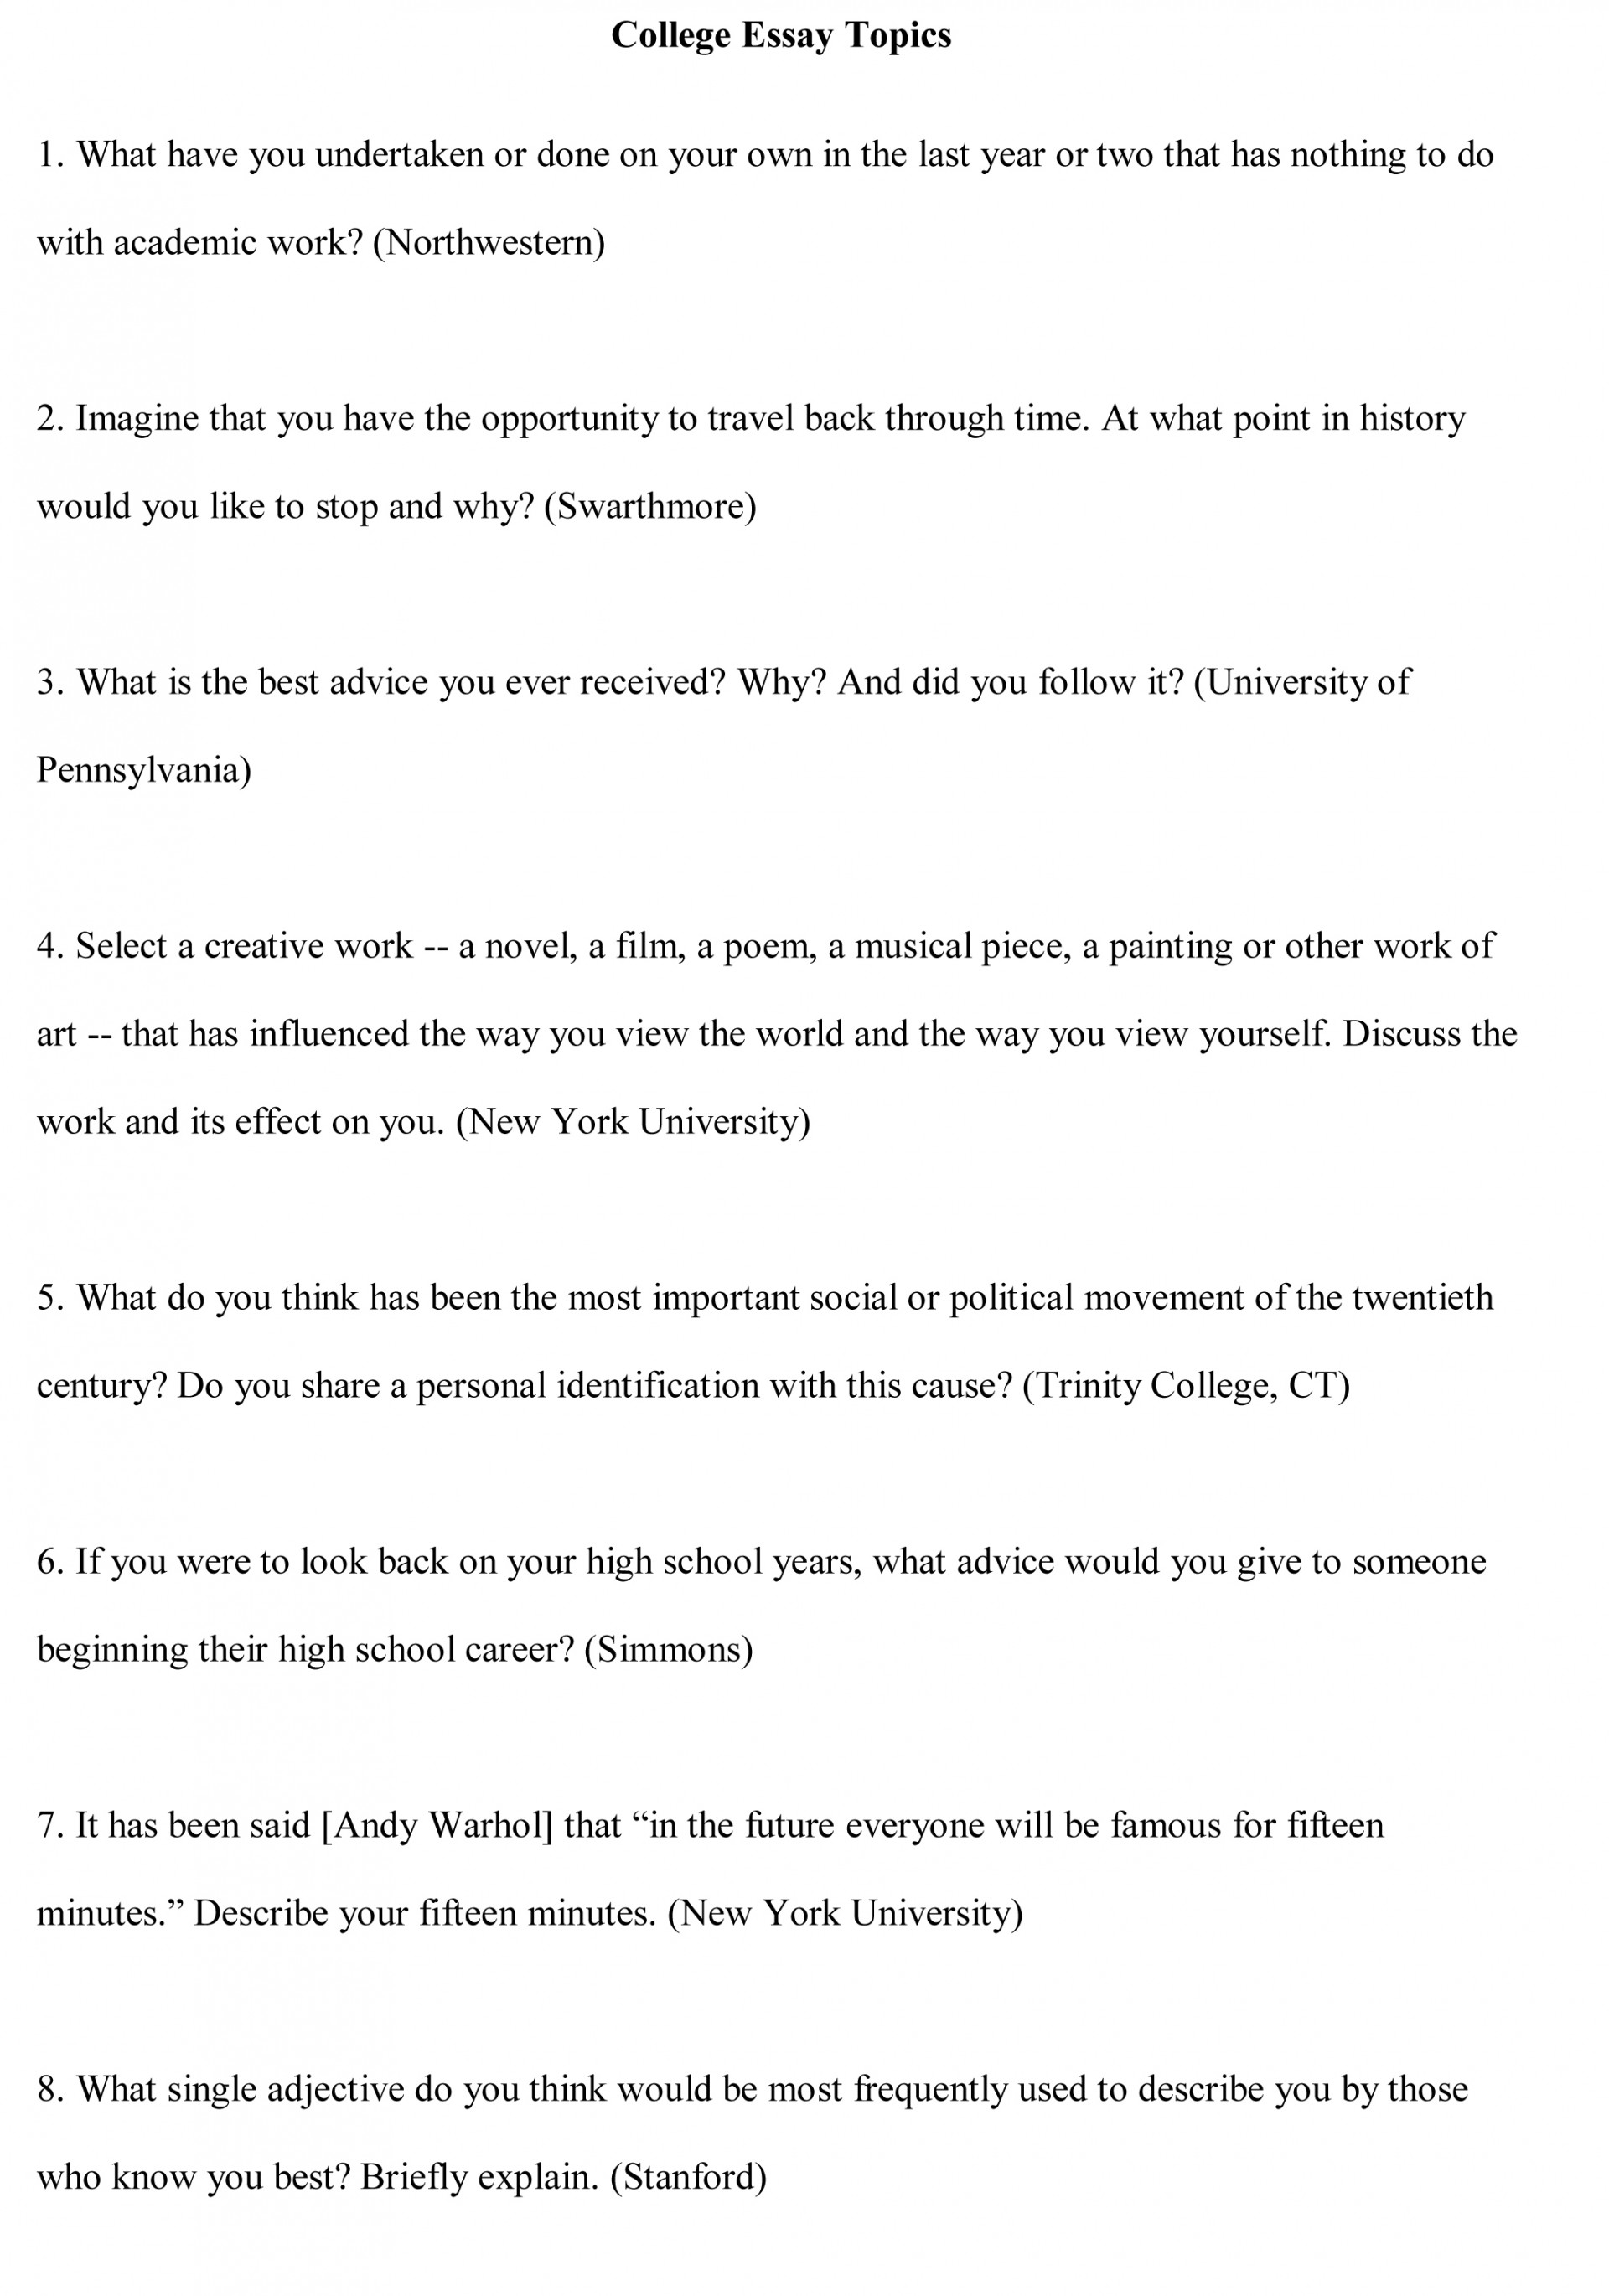 004 College Essay Topics Free Sample1 Good For Essays Top Best Prompts Great 1920